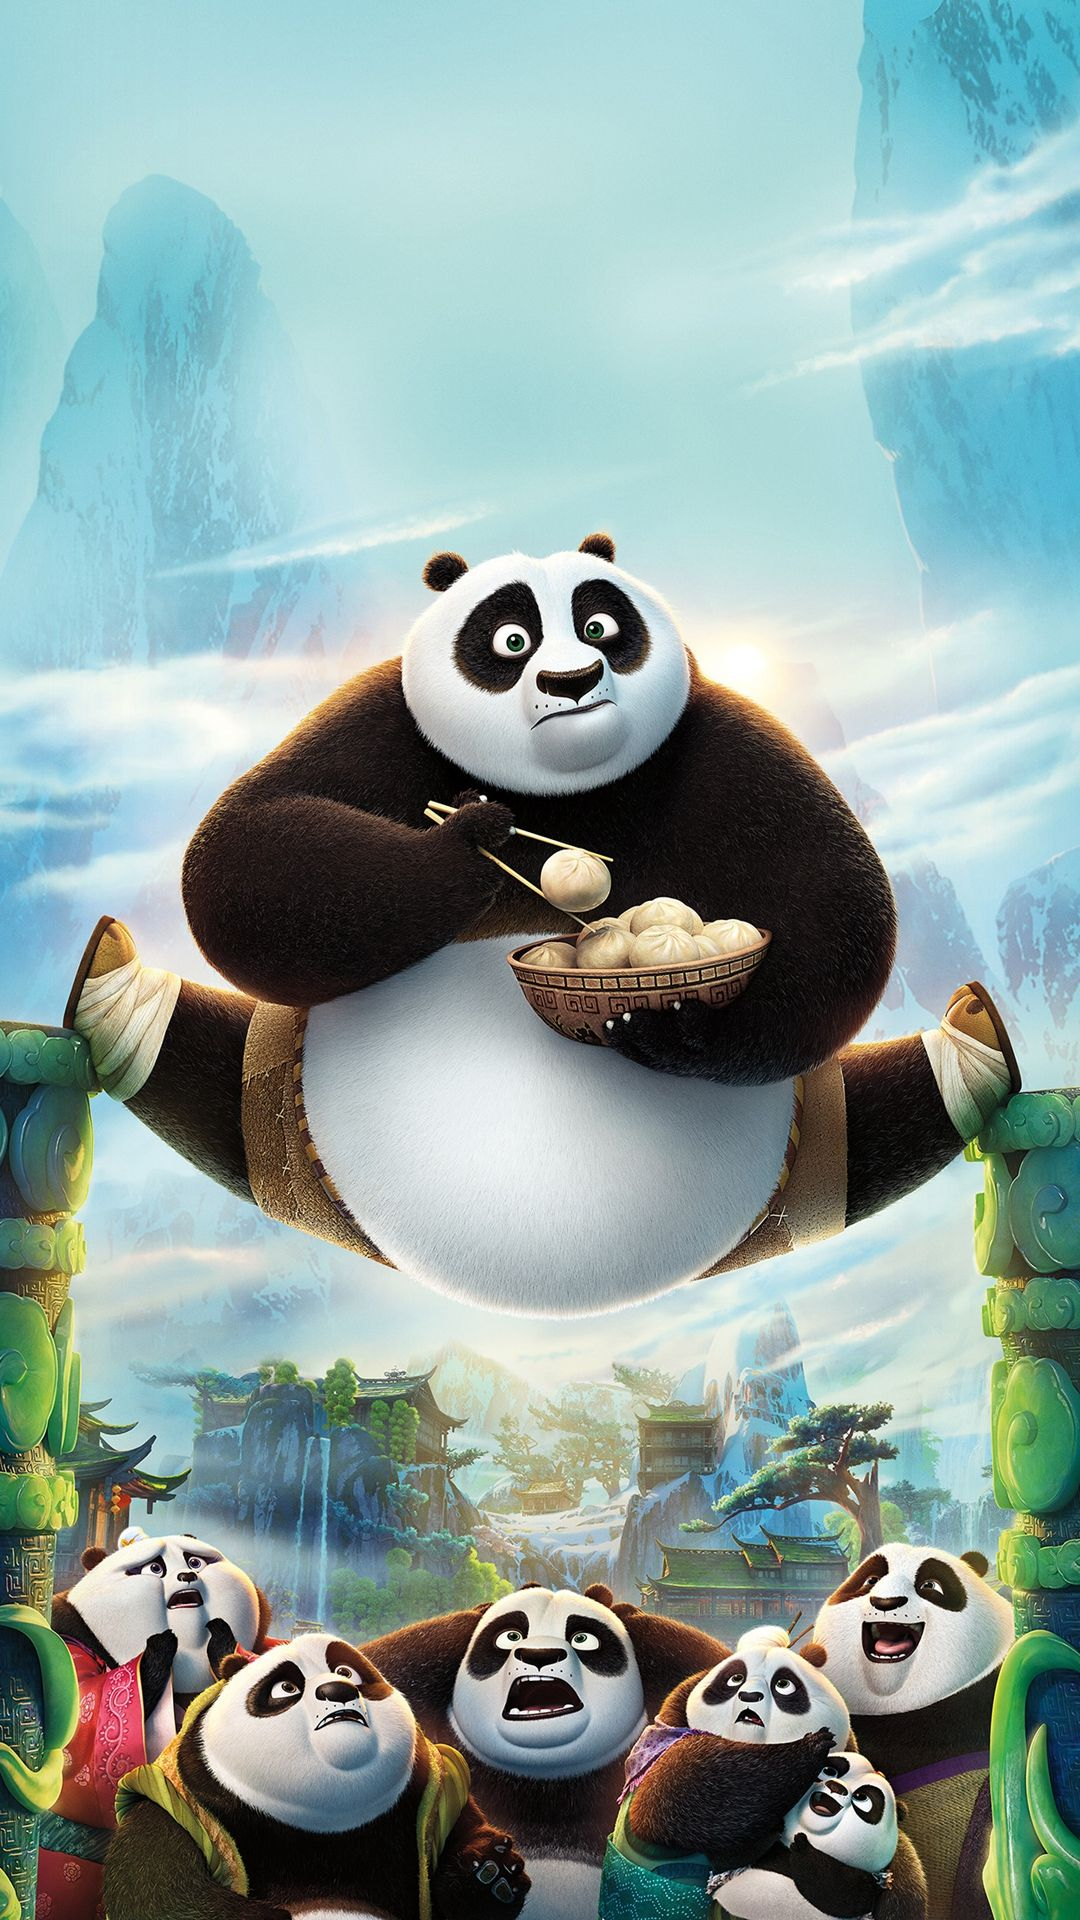 Kung fu panda iphone wallpaper - Kungfu Panda Art Illust Film Disney Iphone Wallpaper